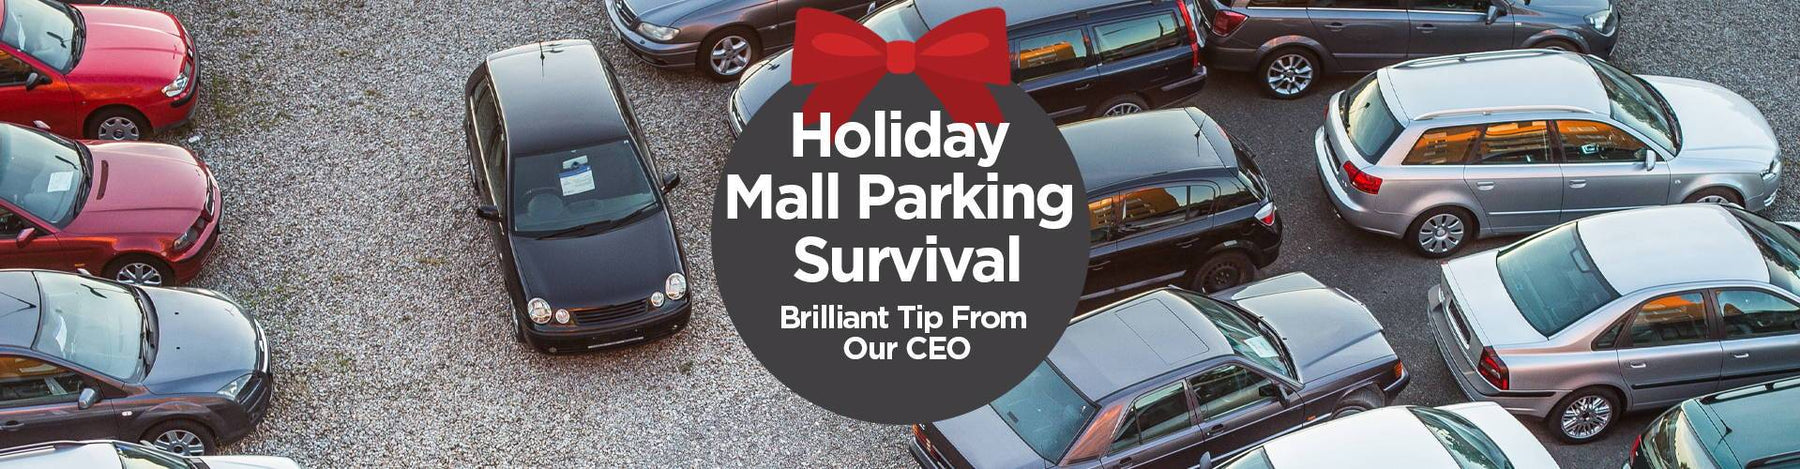 Holiday Mall Parking Survival - Brilliant Tip from our CEO